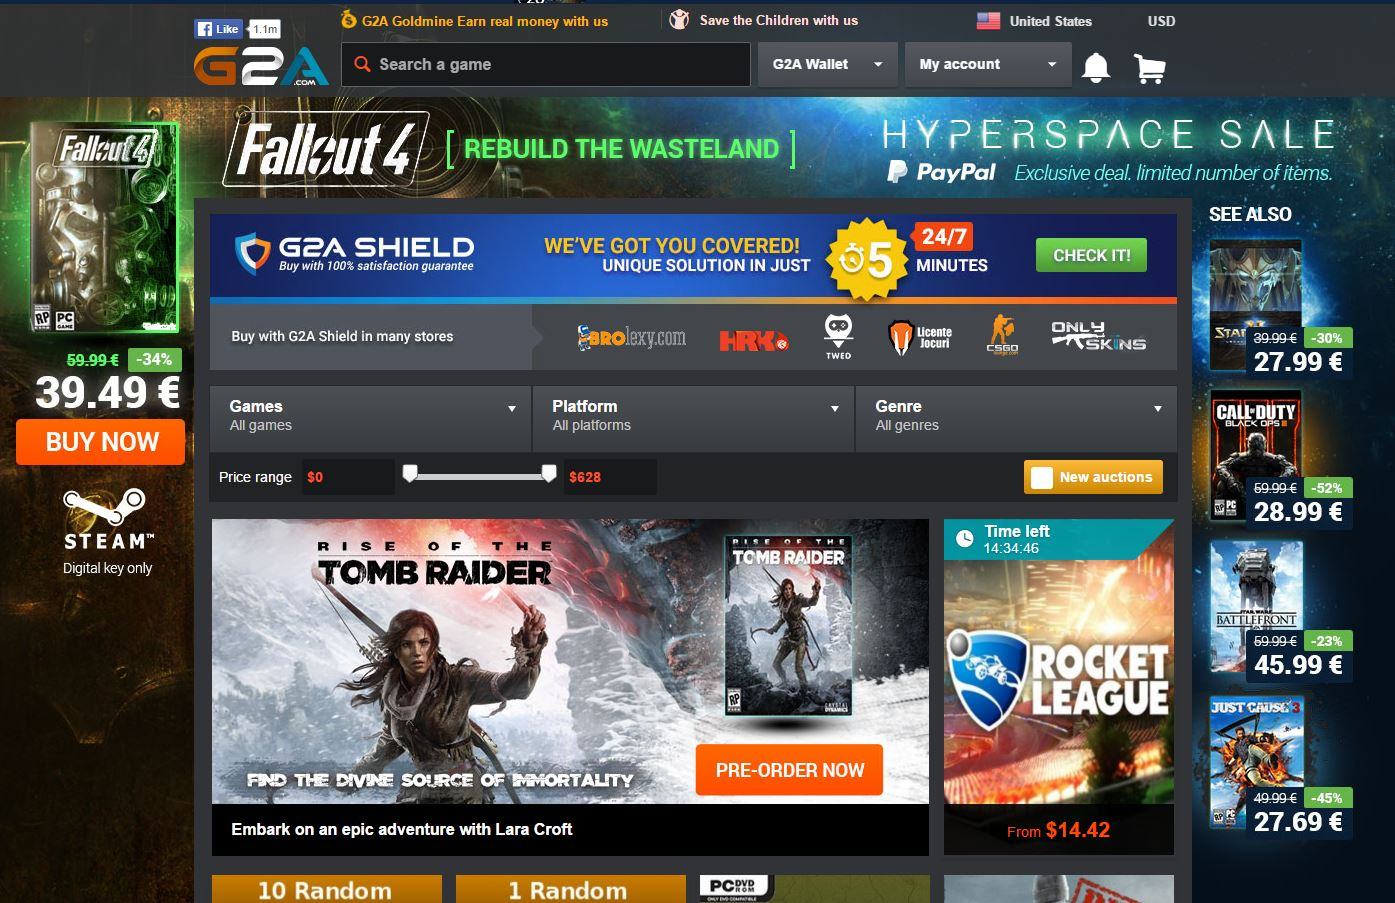 G2A online video game distribution marketplace